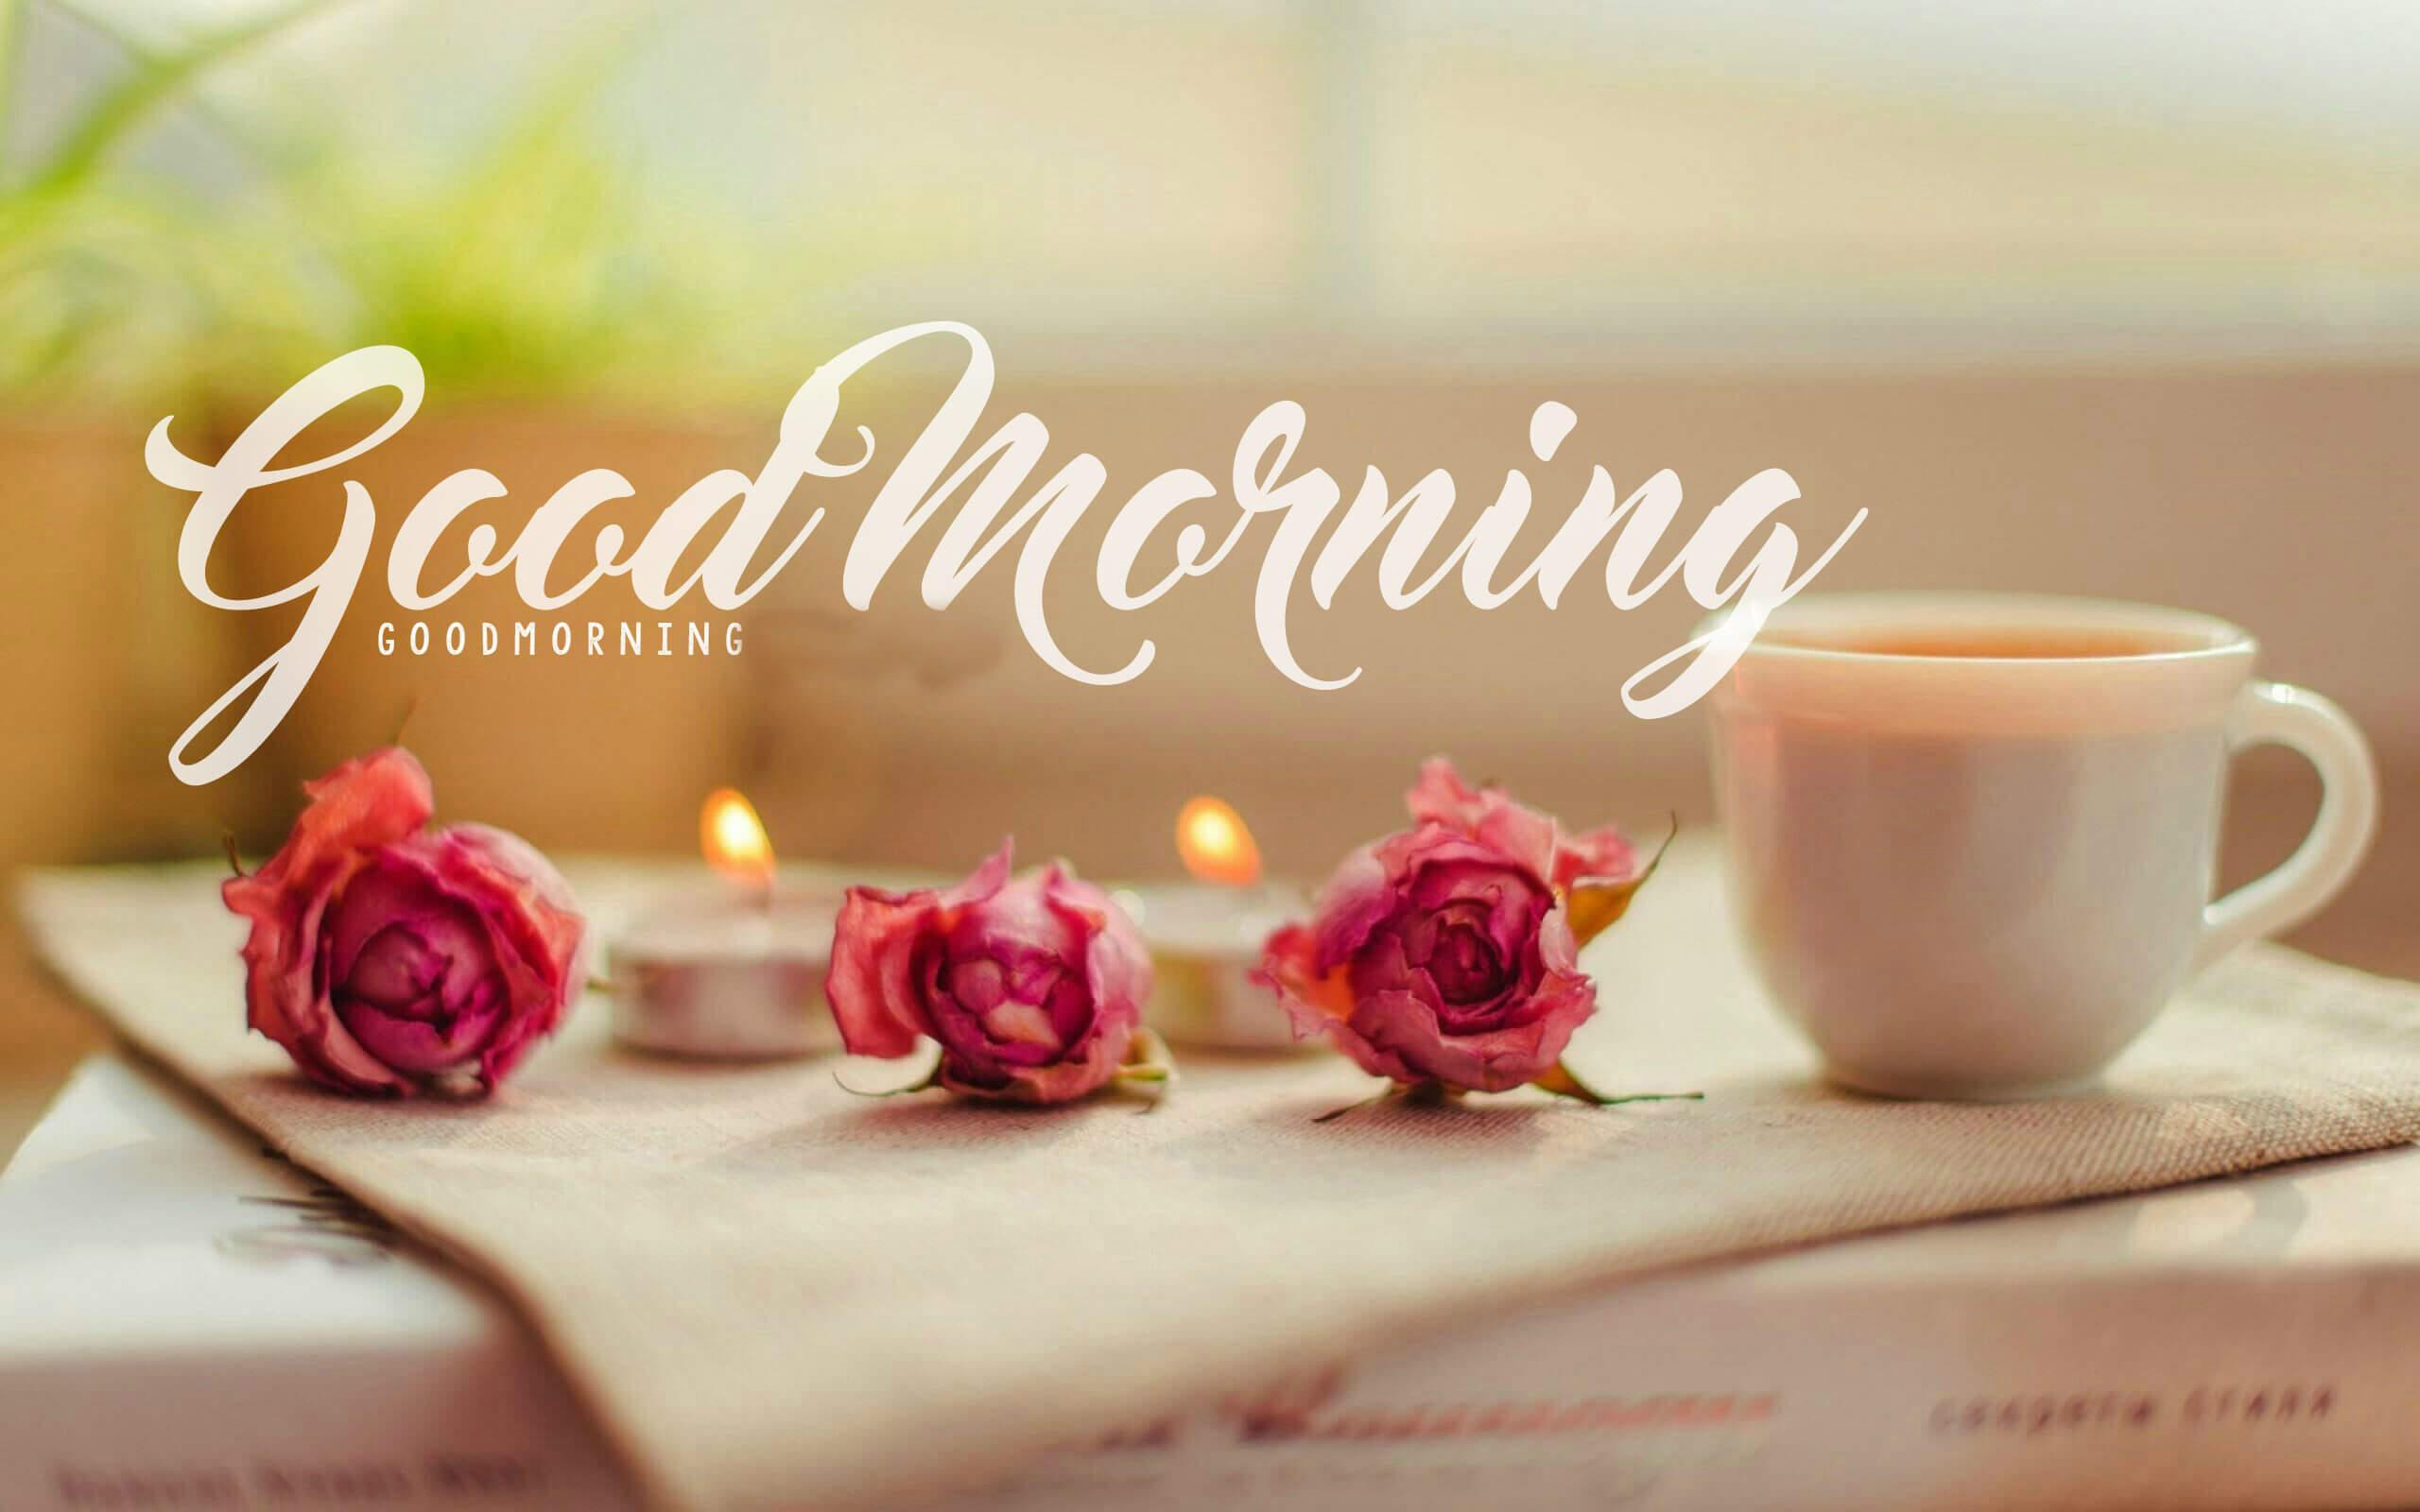 Lovely Good Morning Images Hd 1080p Download Good Morning